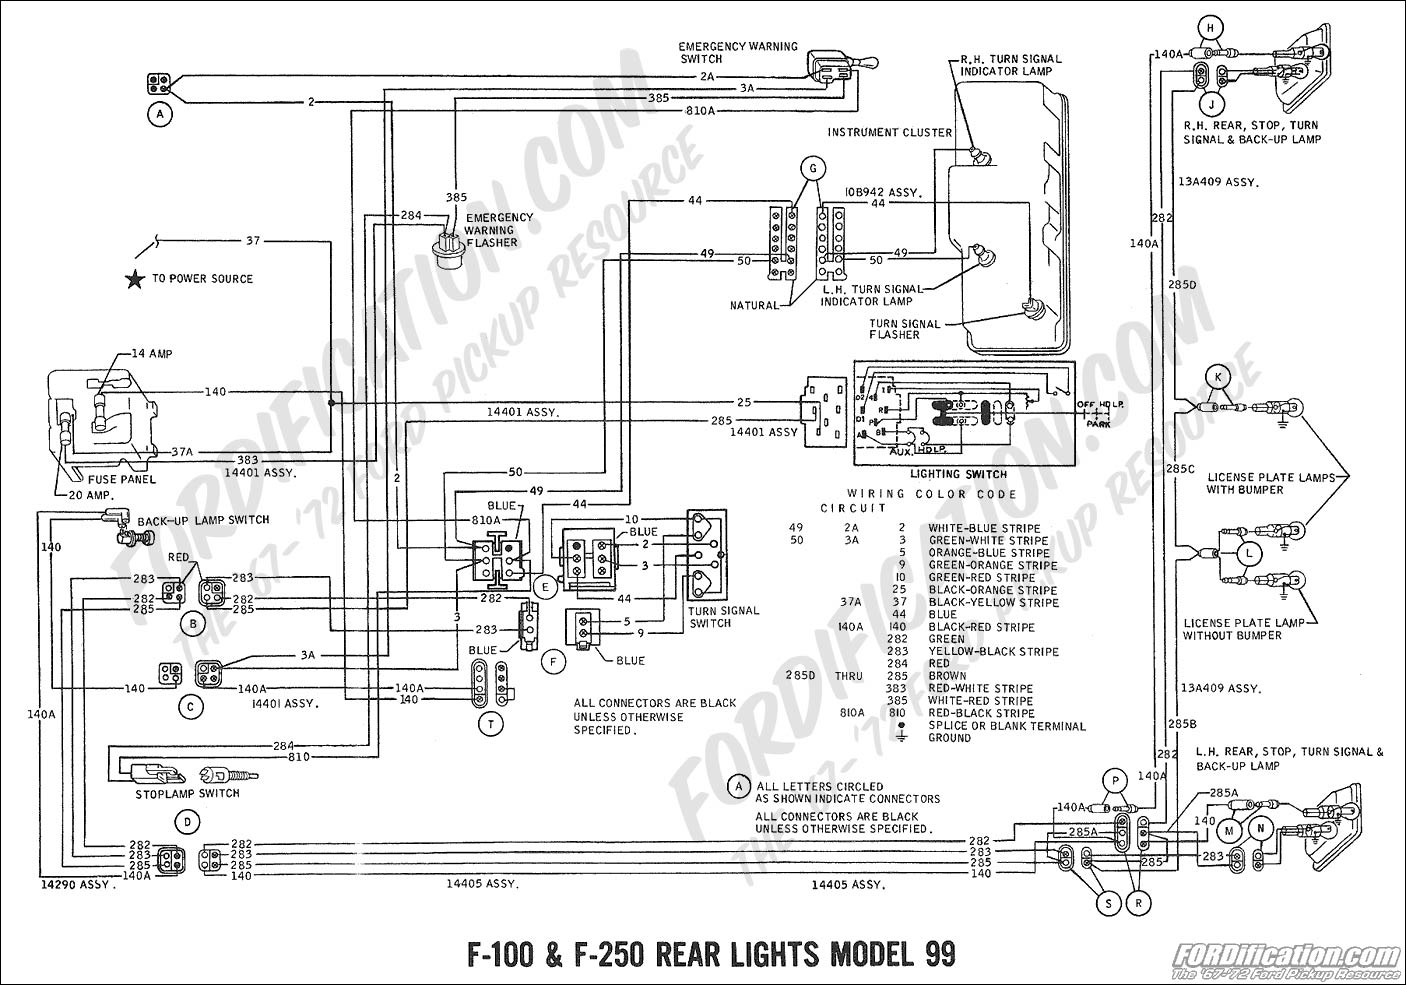 2004 ford f 250 tail light wiring diagram car fuse box wiring tail light wiring diagram ford 550 basic tail light wiring diagram rh gobbogames co 2005 ford f 250 wiring diagram 2004 ford f250 brake light wiring diagram publicscrutiny Choice Image